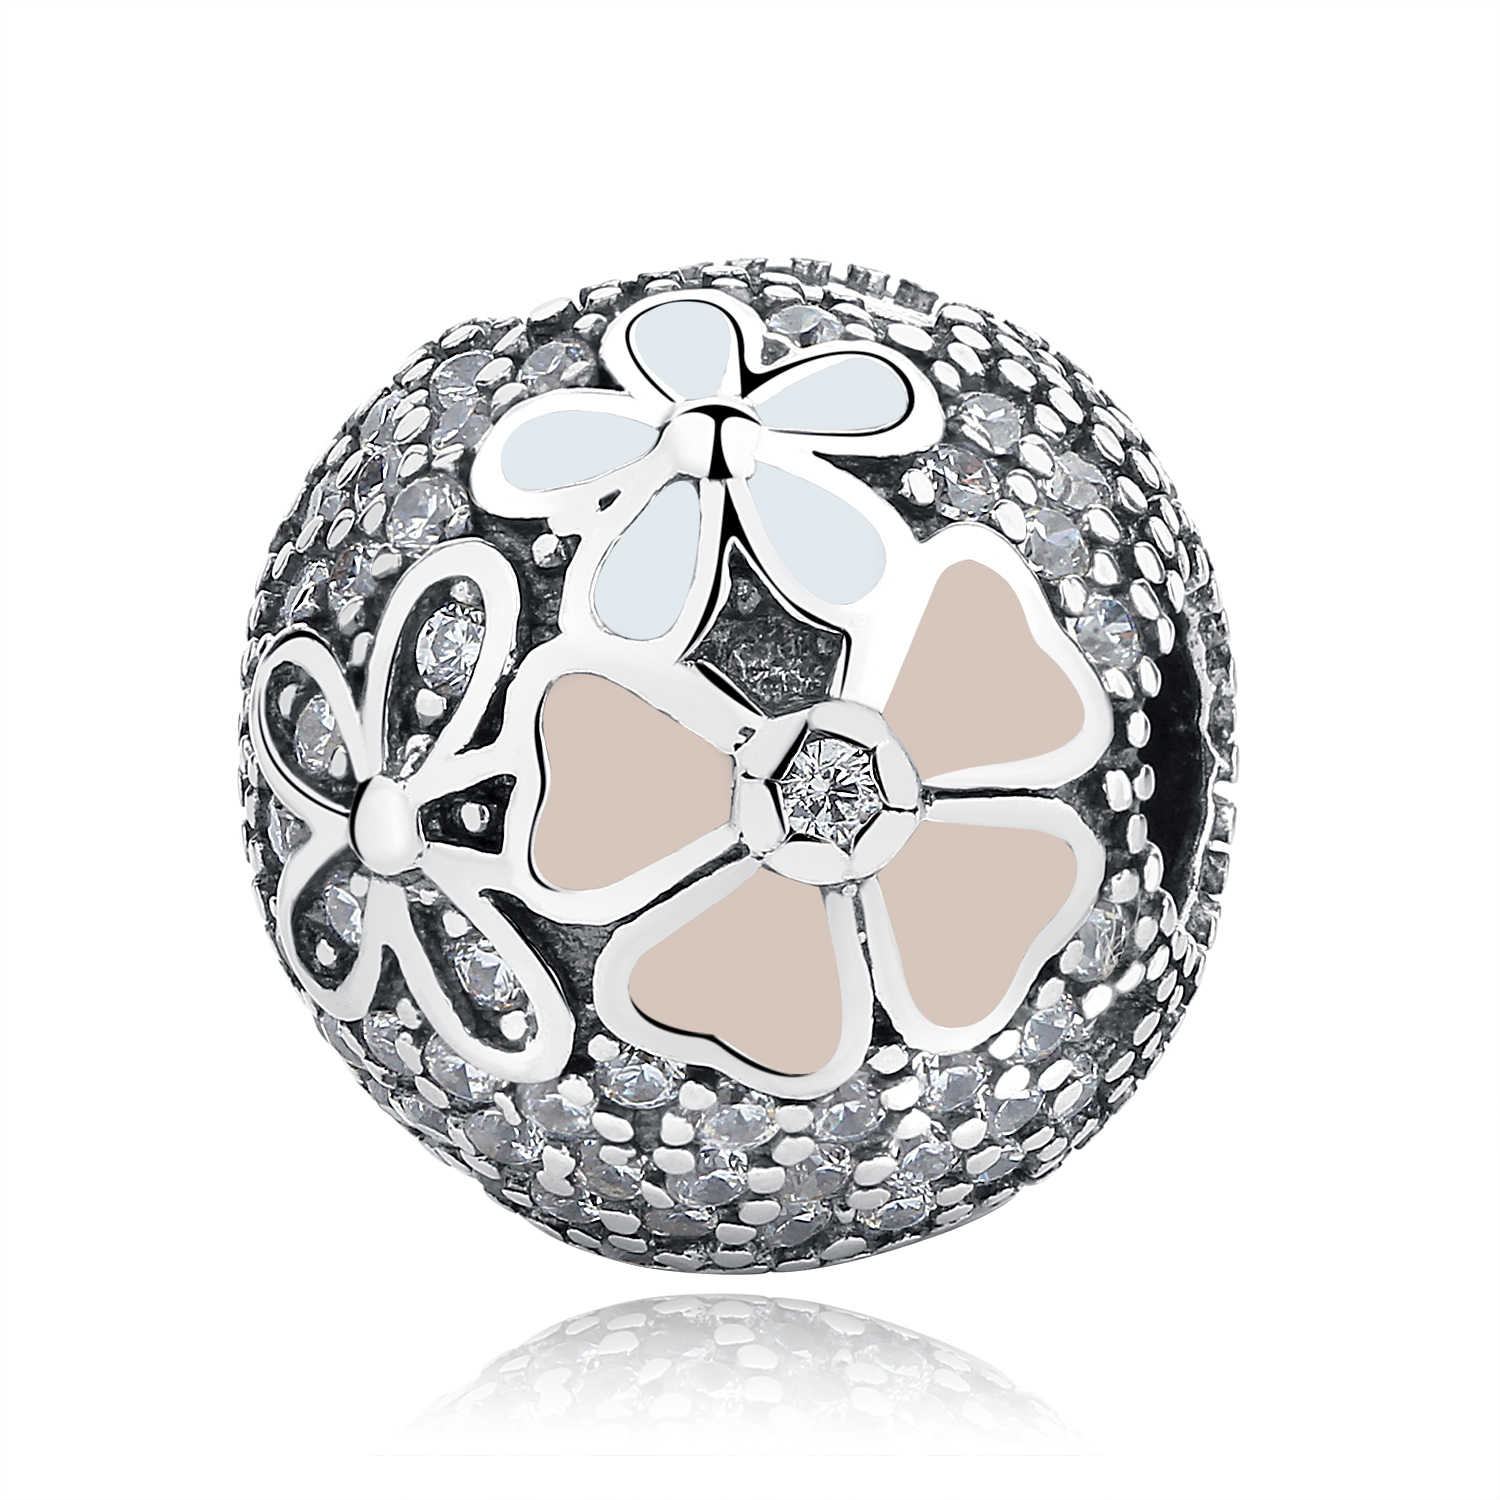 42e0c424d ... 100% S925 Sterling Silver Bead Flower Star Austria Crystal Safety Clip  Stopper Charms Fit Pandora ...